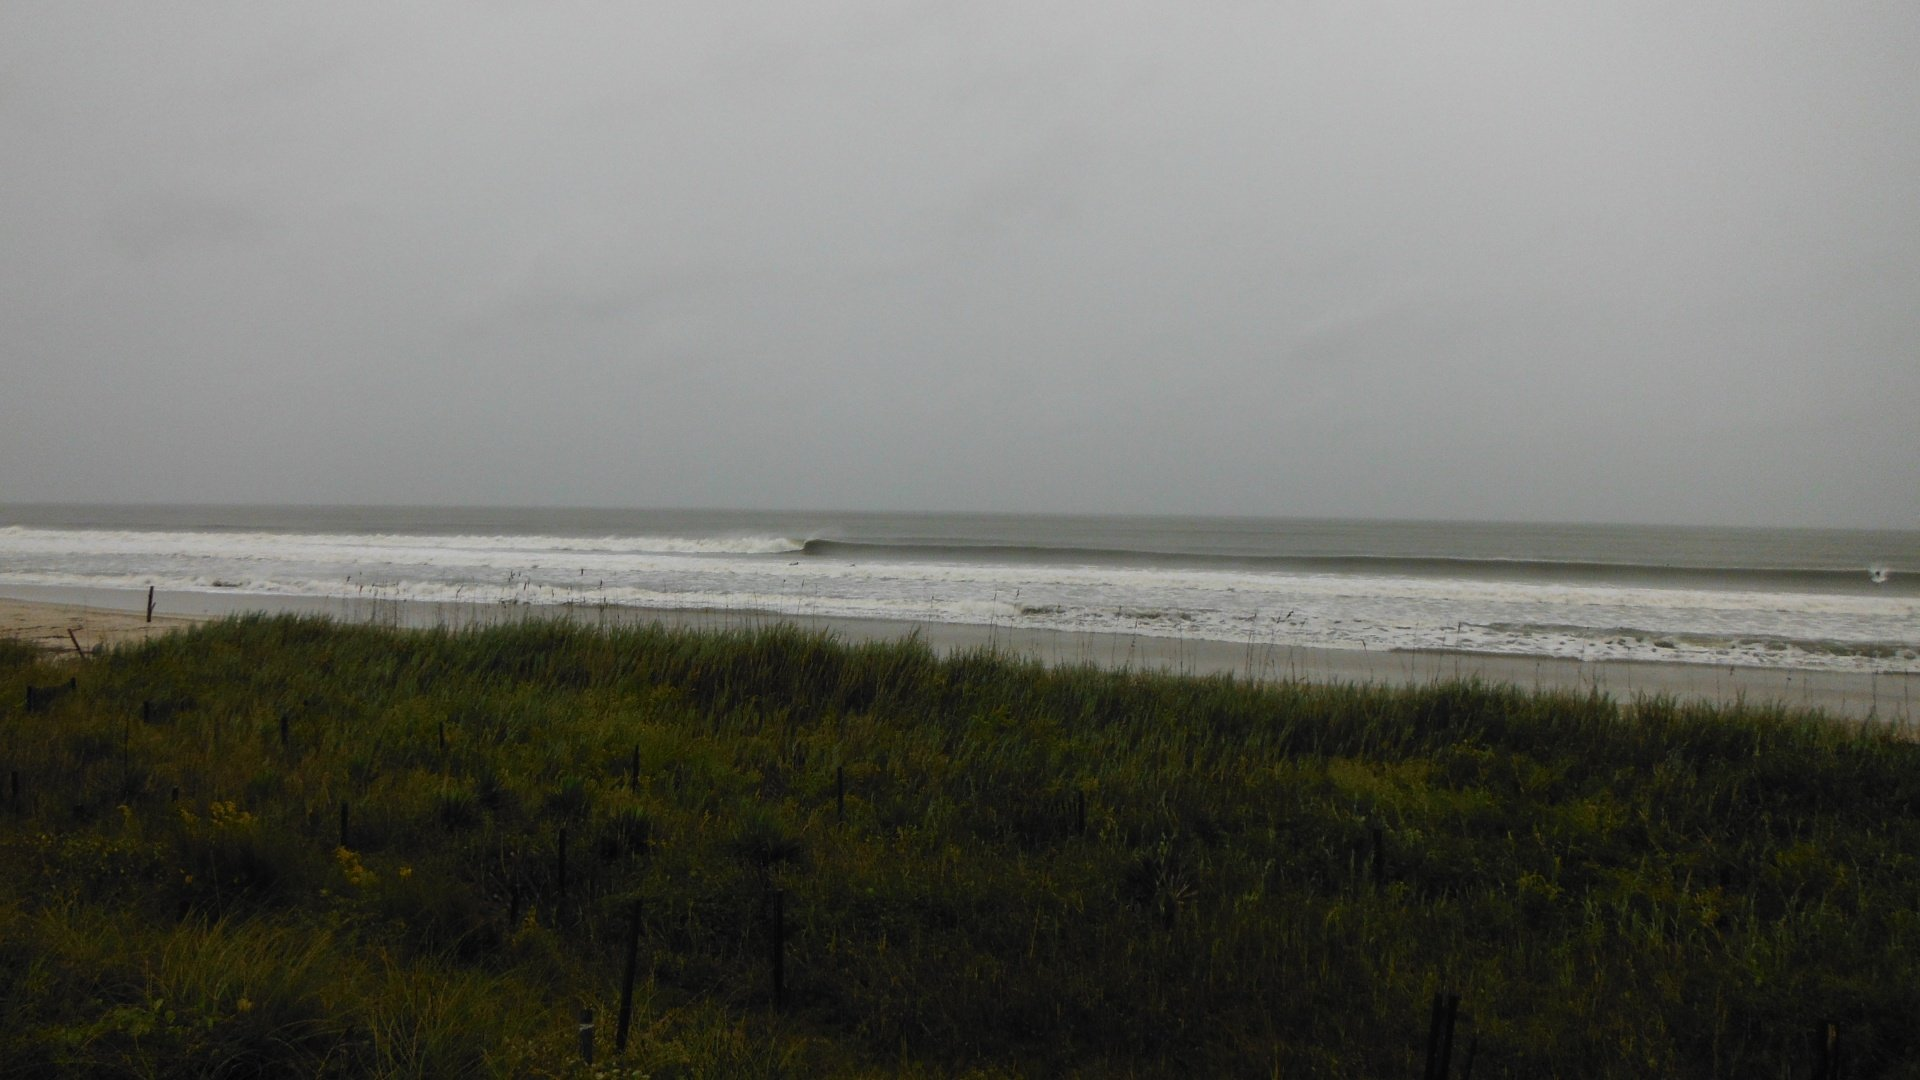 Barrel Cracka's photo of Holden Beach